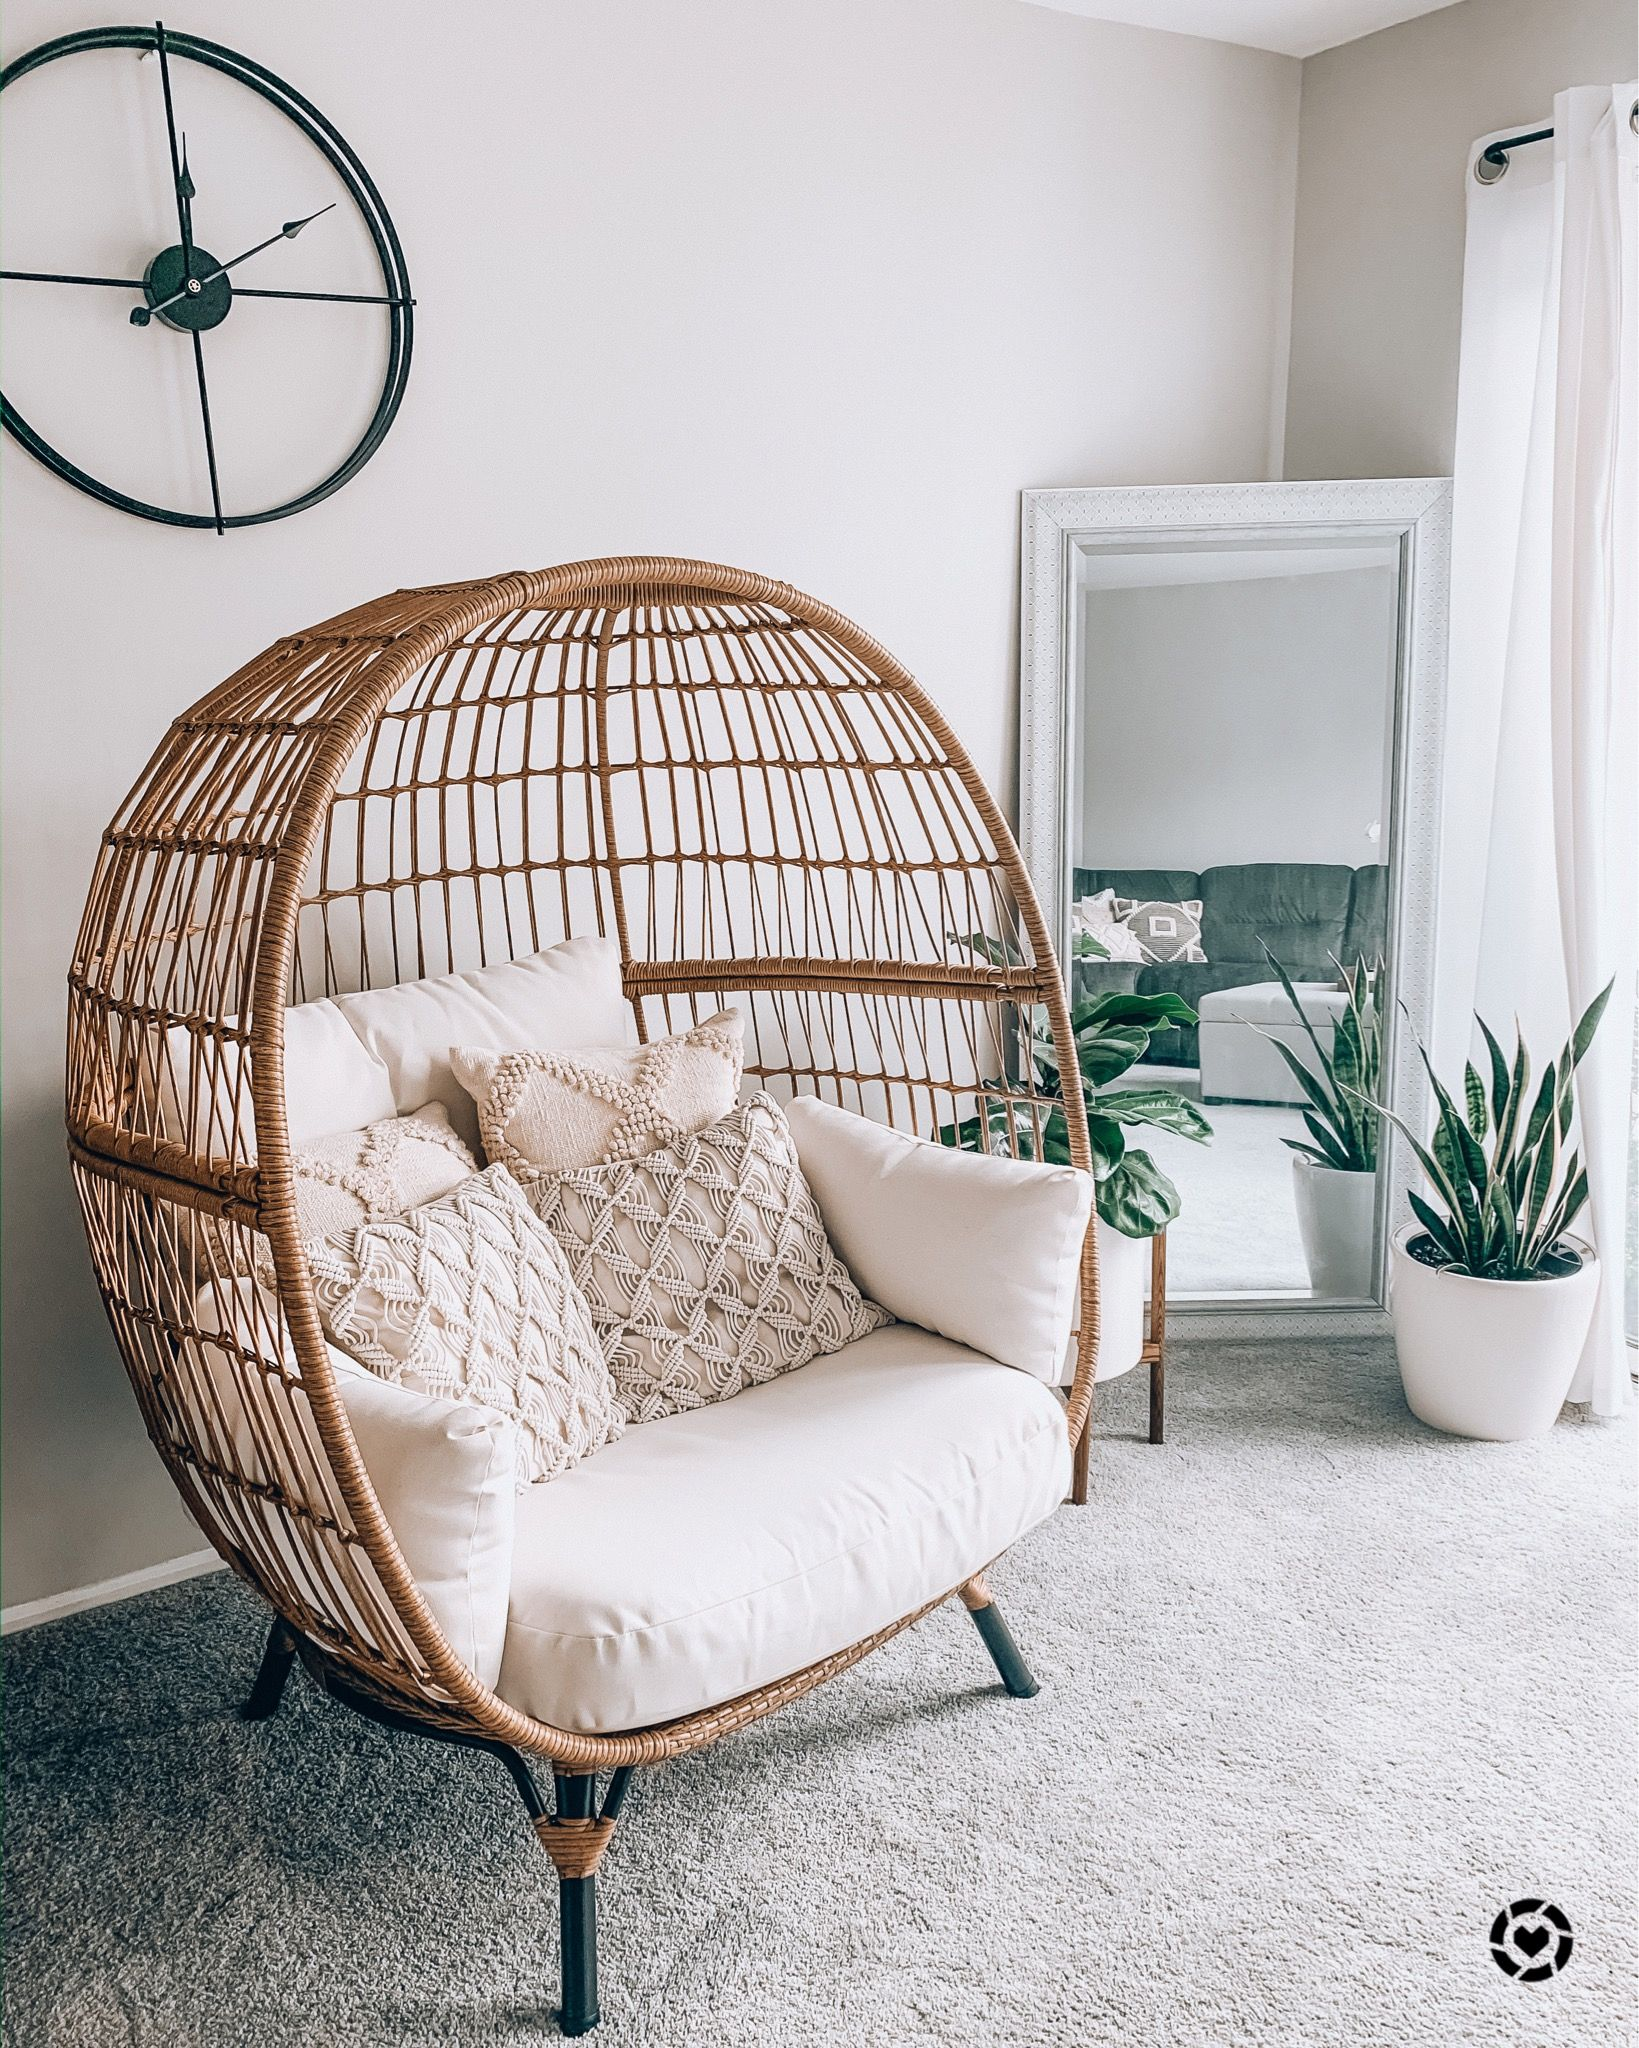 Living Room Egg Chair LIKEtoKNOW.it in 2020 Hanging